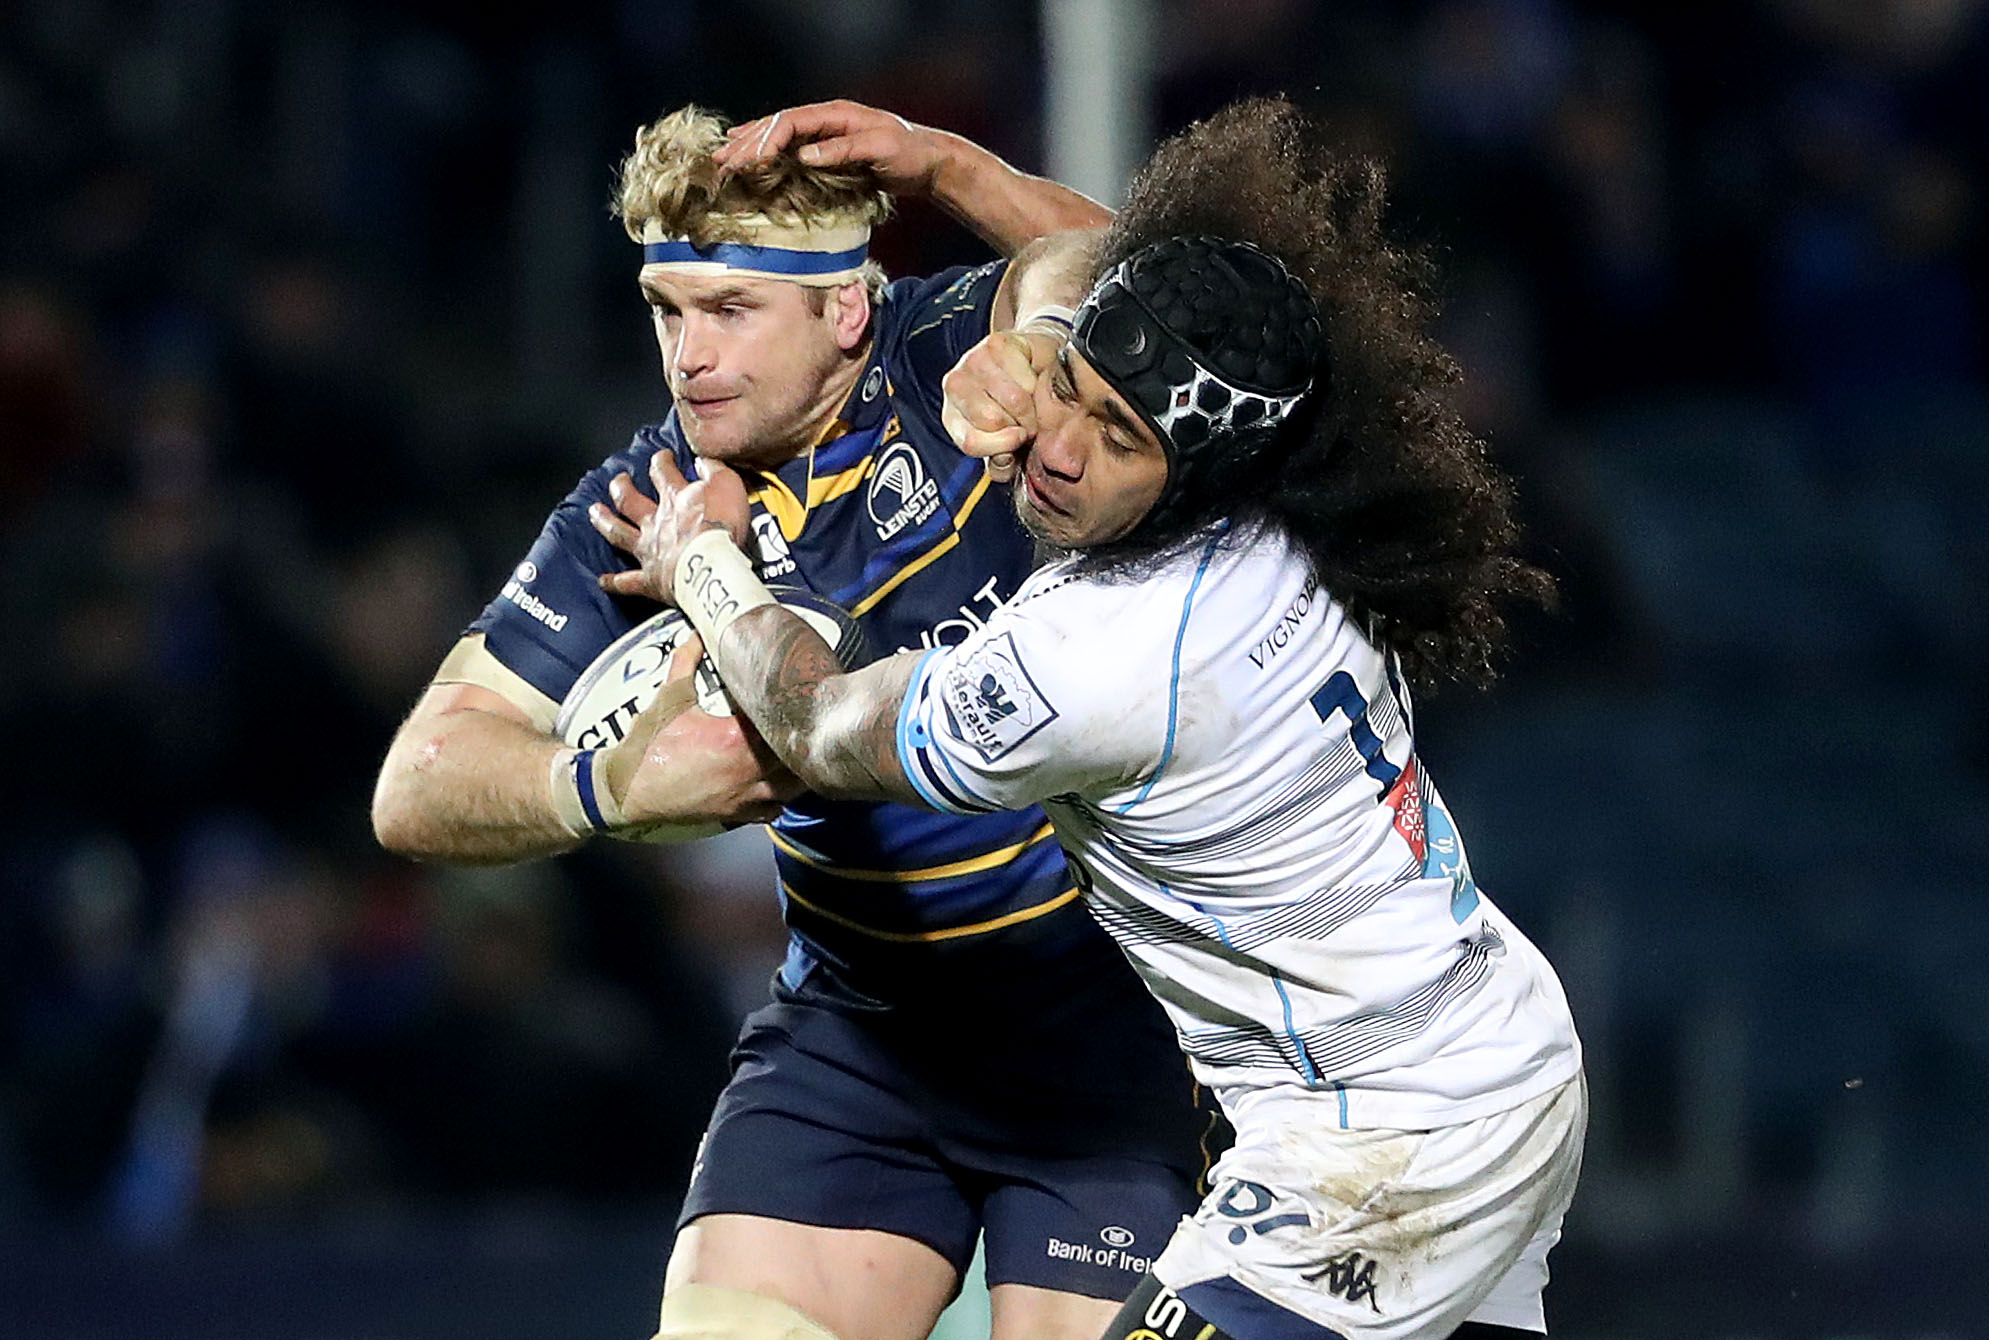 Who could Leinster face in the Champions Cup quarter-finals?